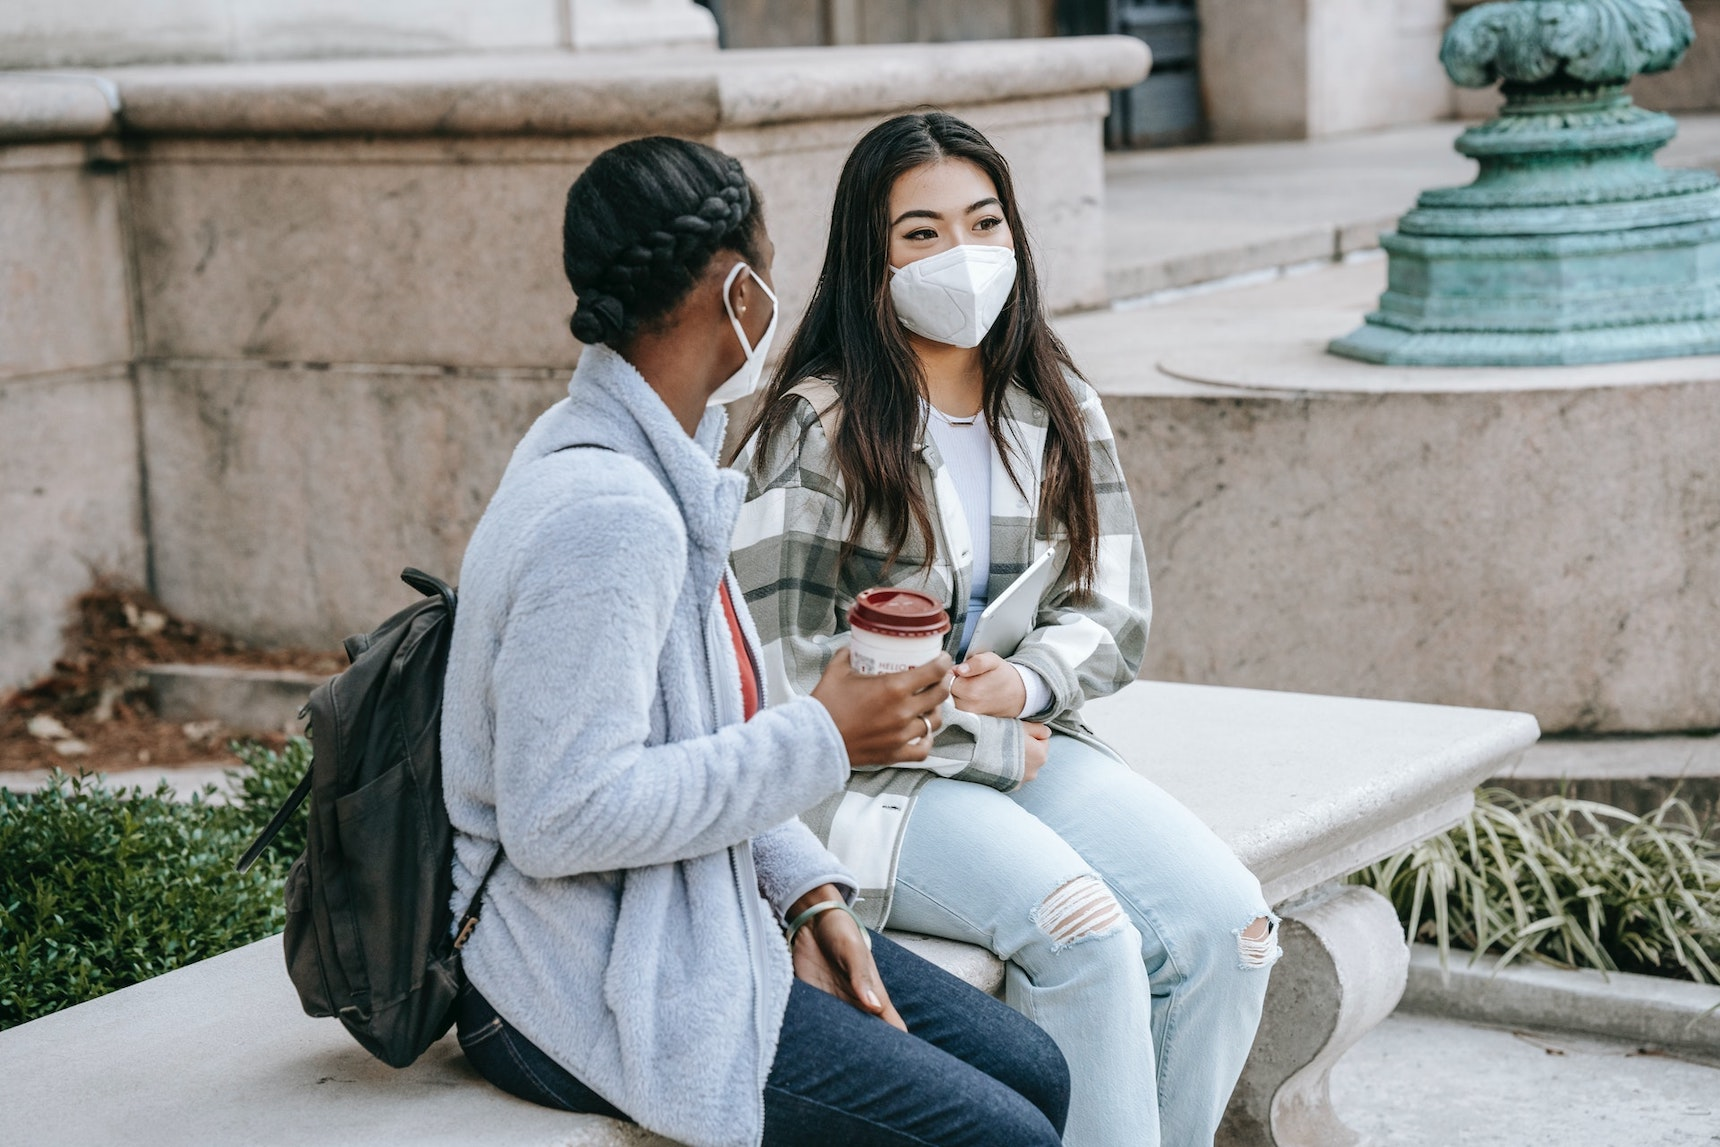 Two female students with face masks are chatting on a stone bench at university campus